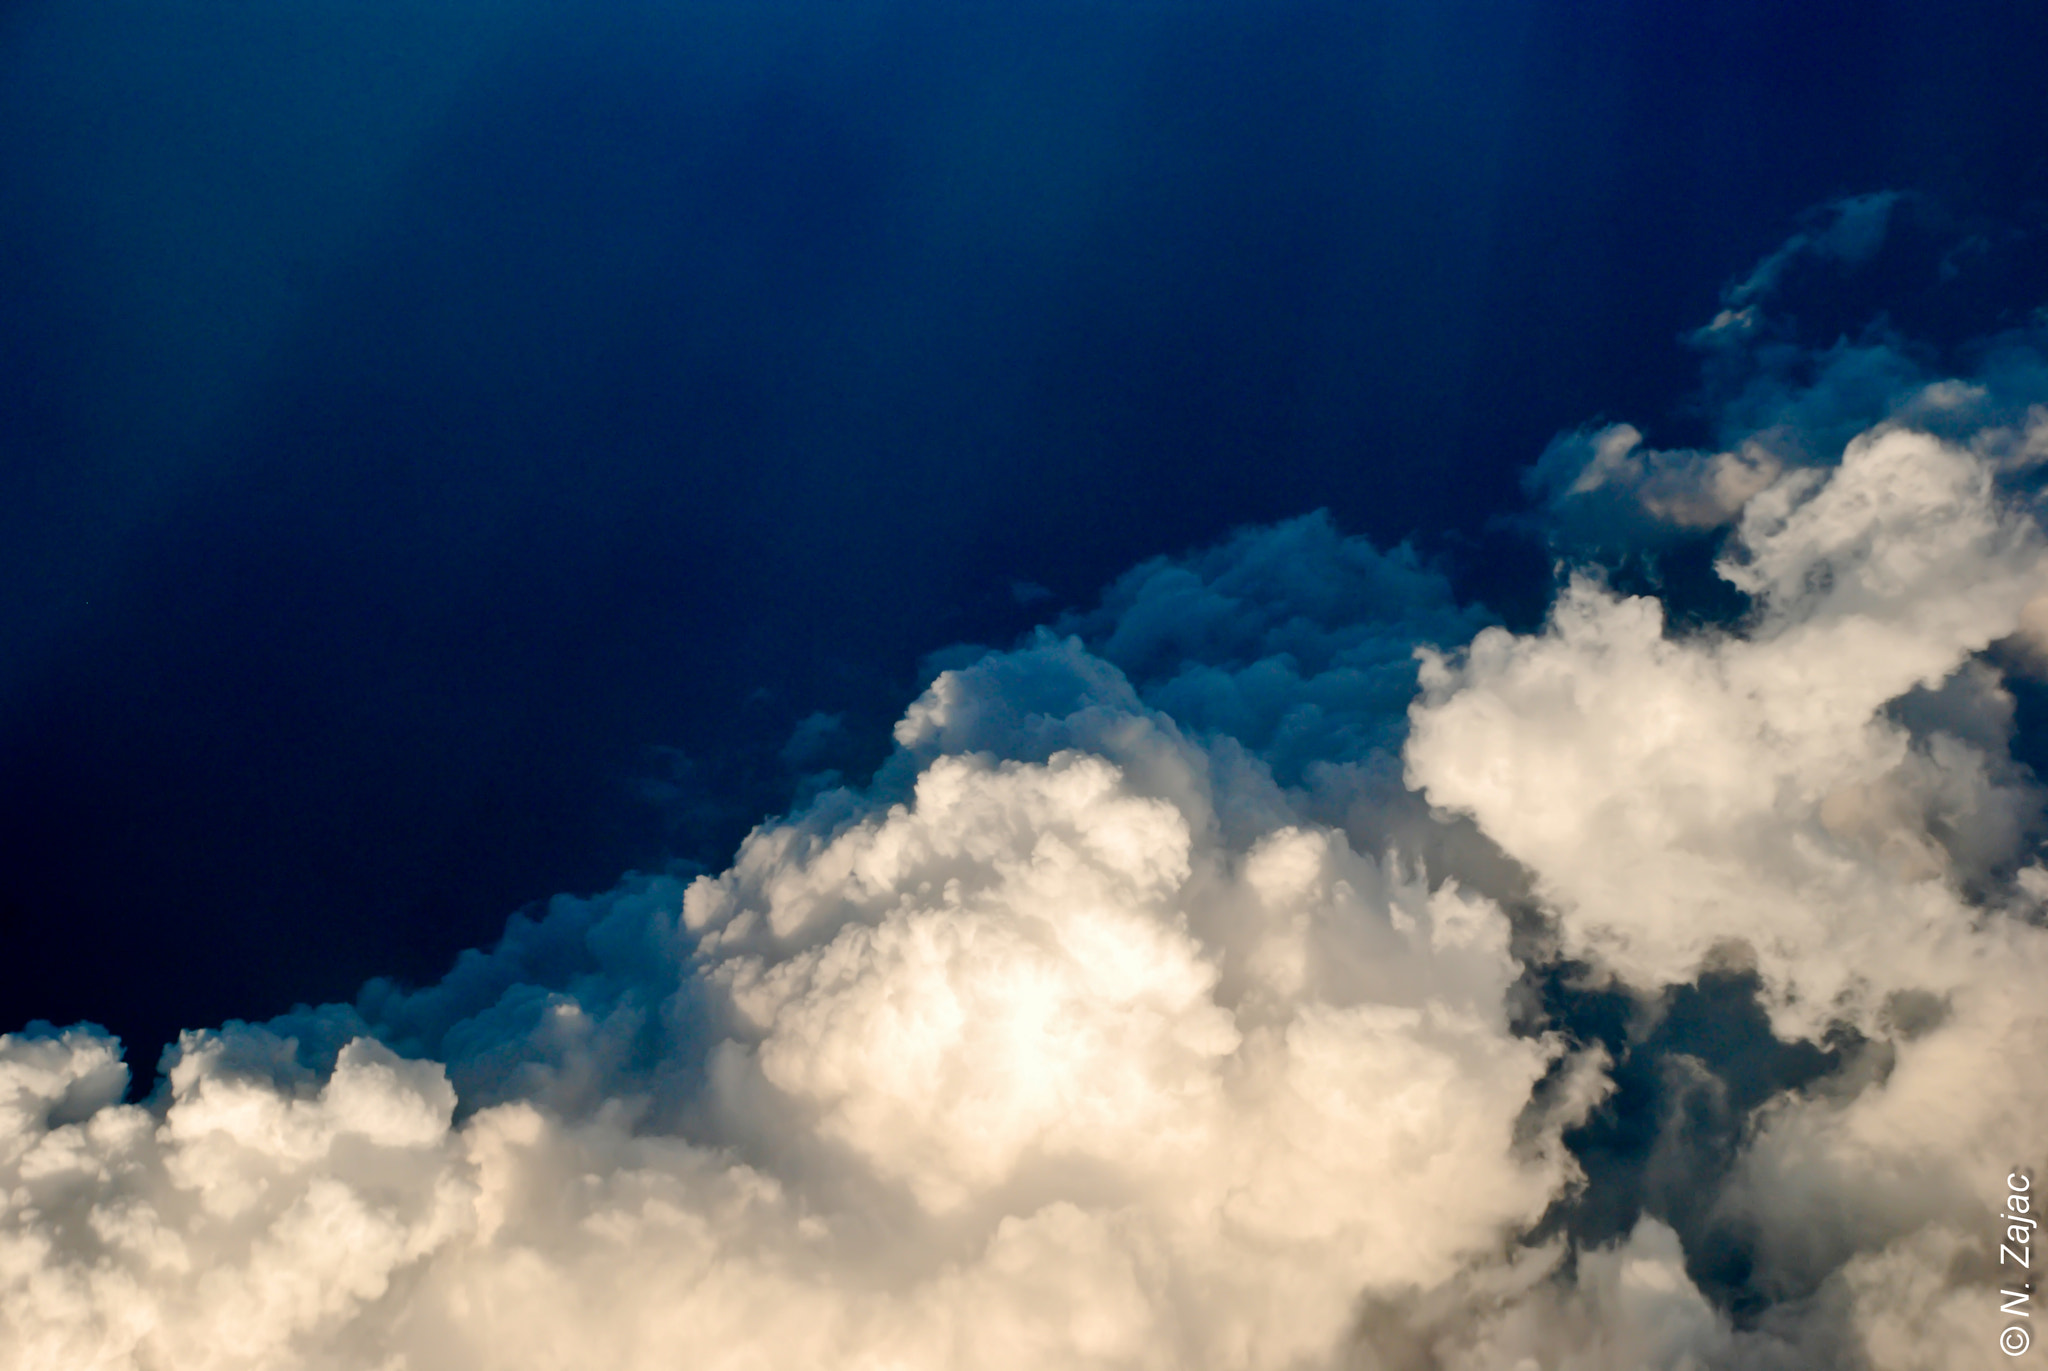 Photograph Take me to the clouds And above by Nils Zajac on 500px